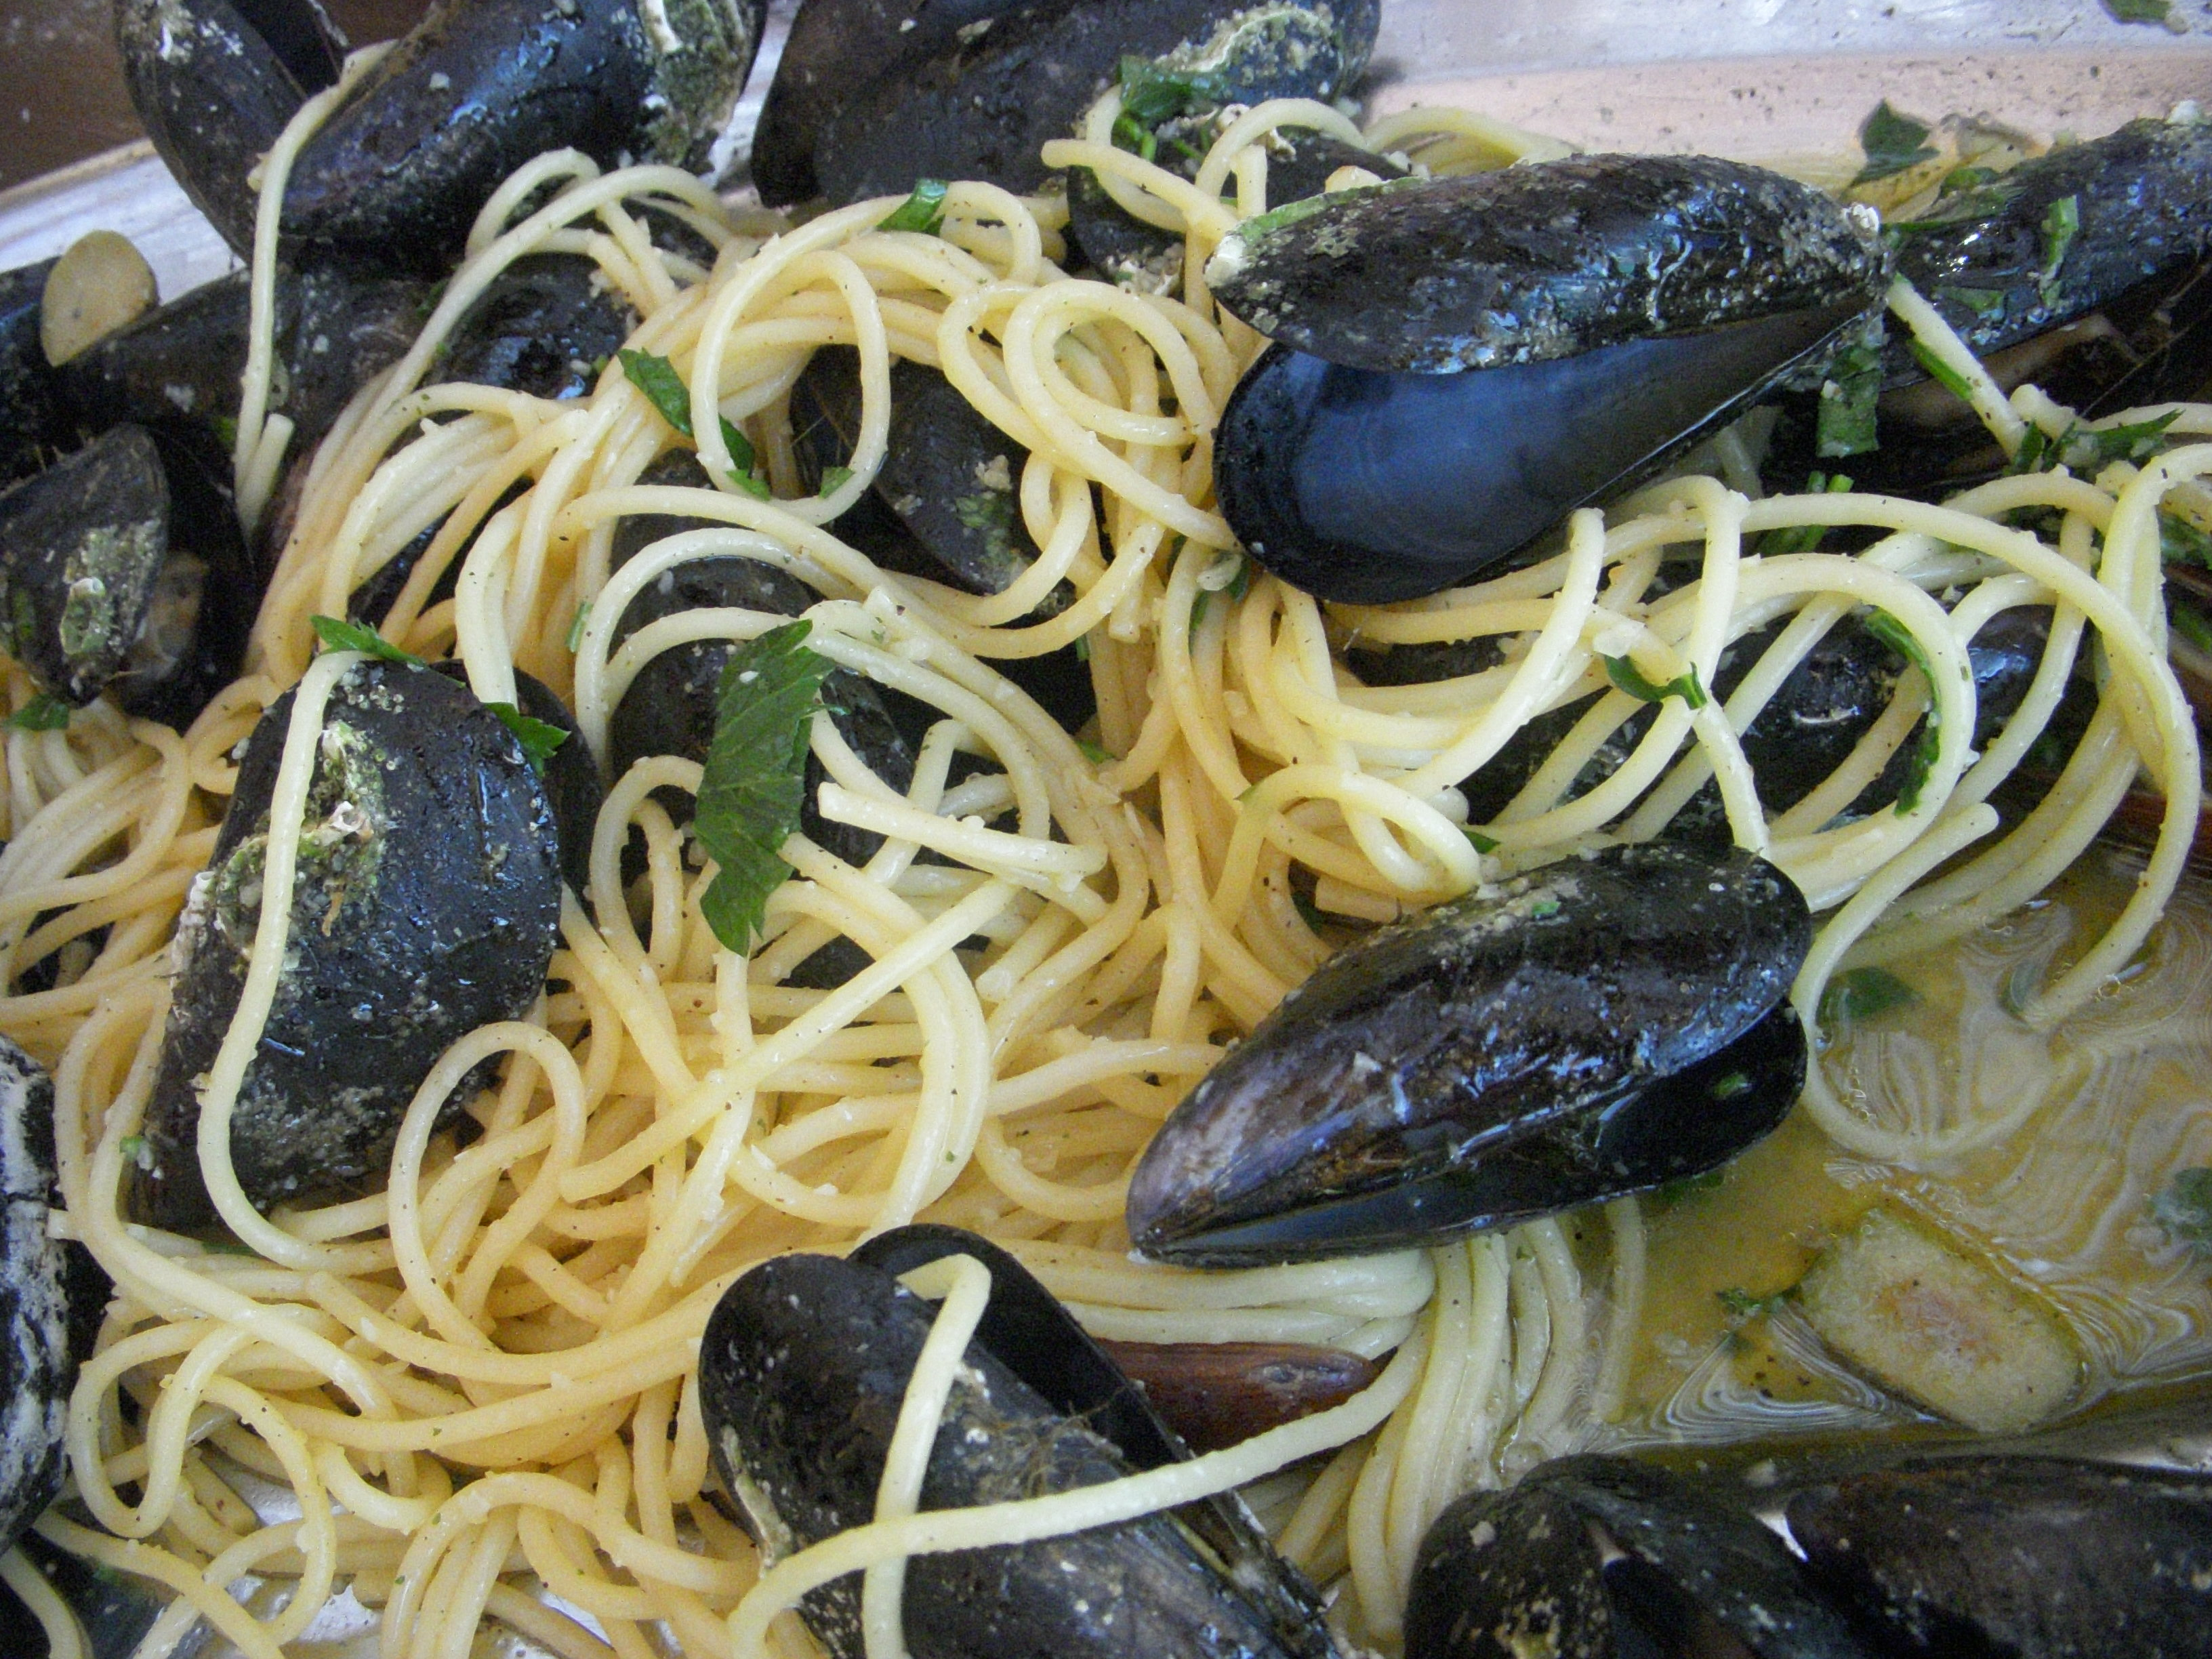 Spaghetti with mussels from Ston